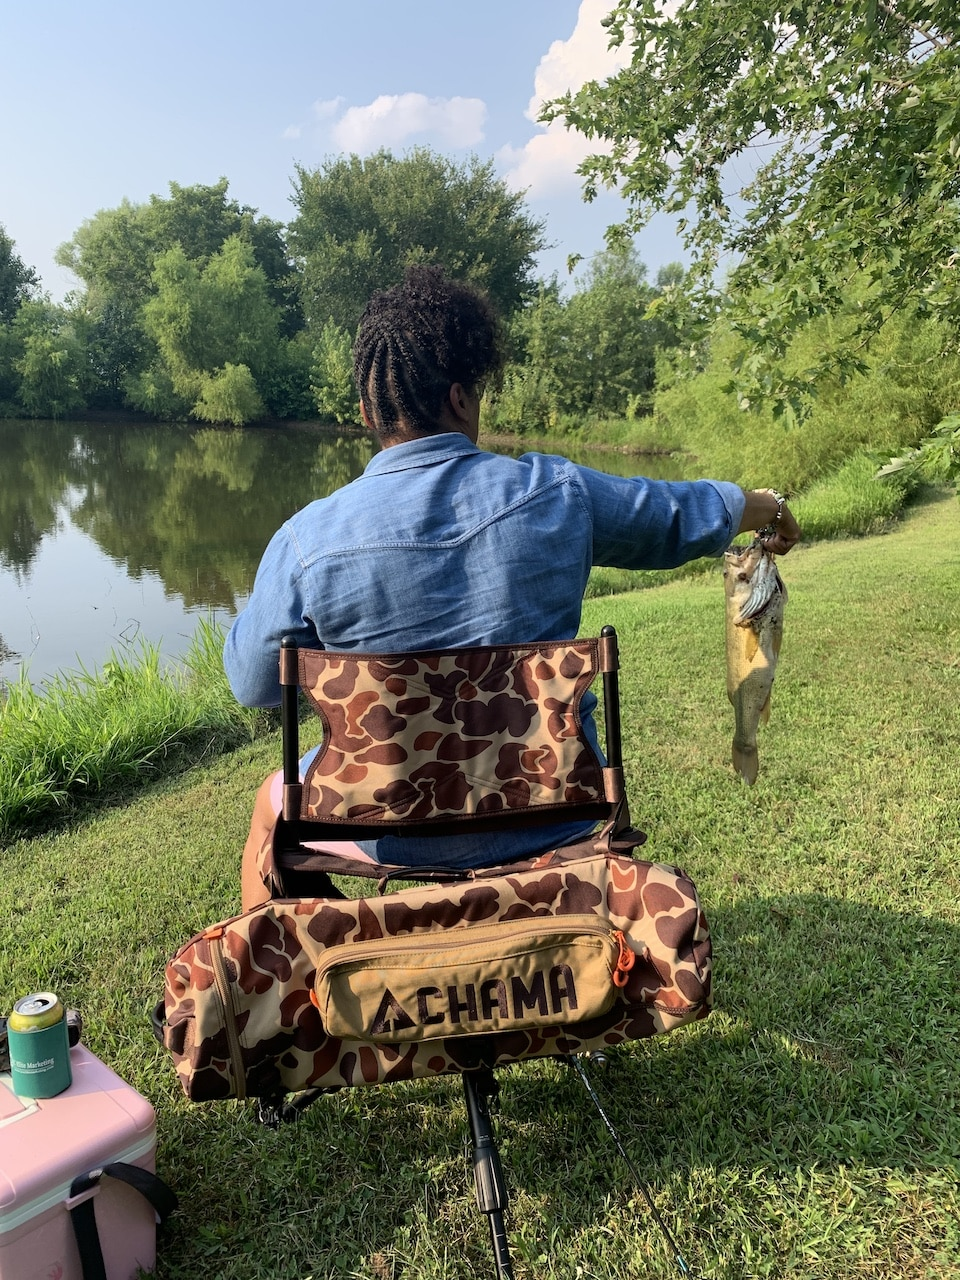 Sharenda caught a bass in her CHAMA Pursuit Chair